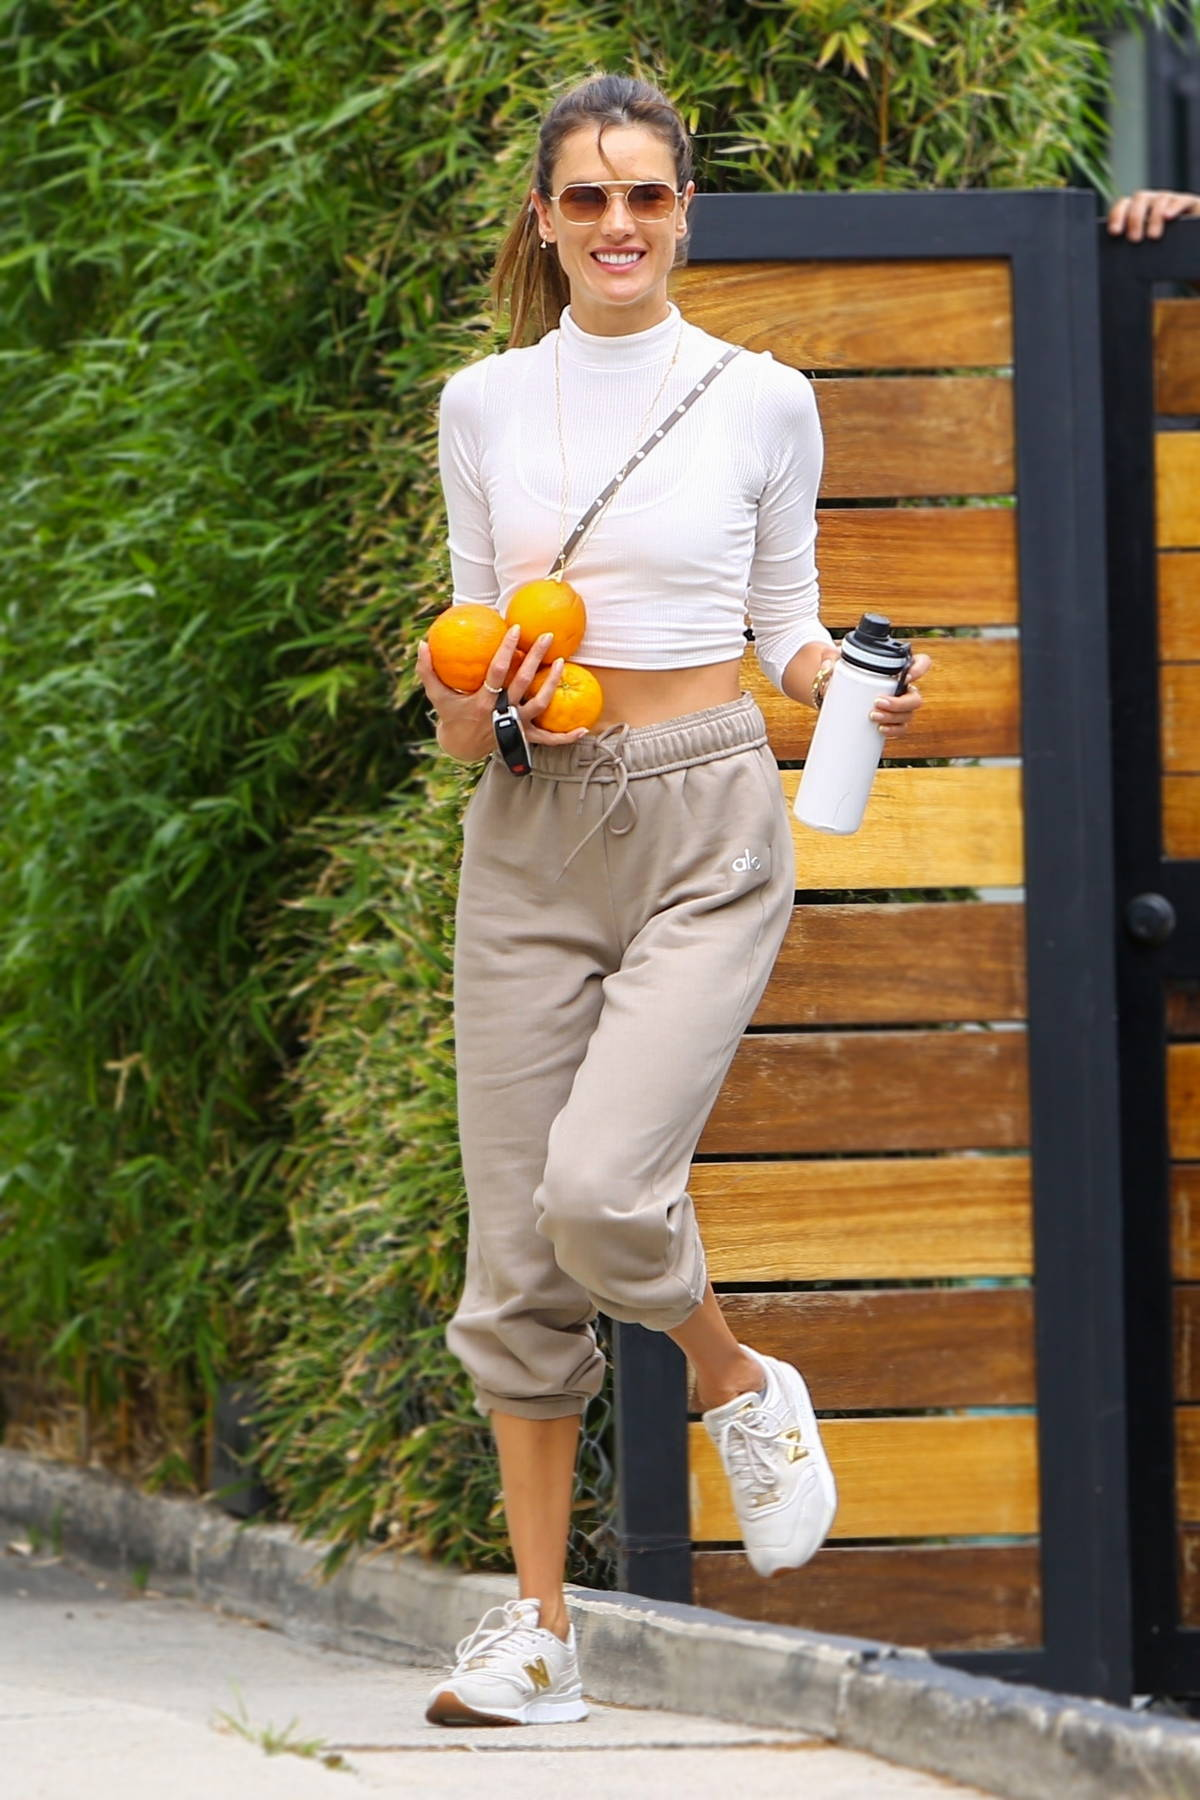 Alessandra Ambrosio flashes her ripped midriff in a white crop top while attending a Pilates class in Beverly Hills, California